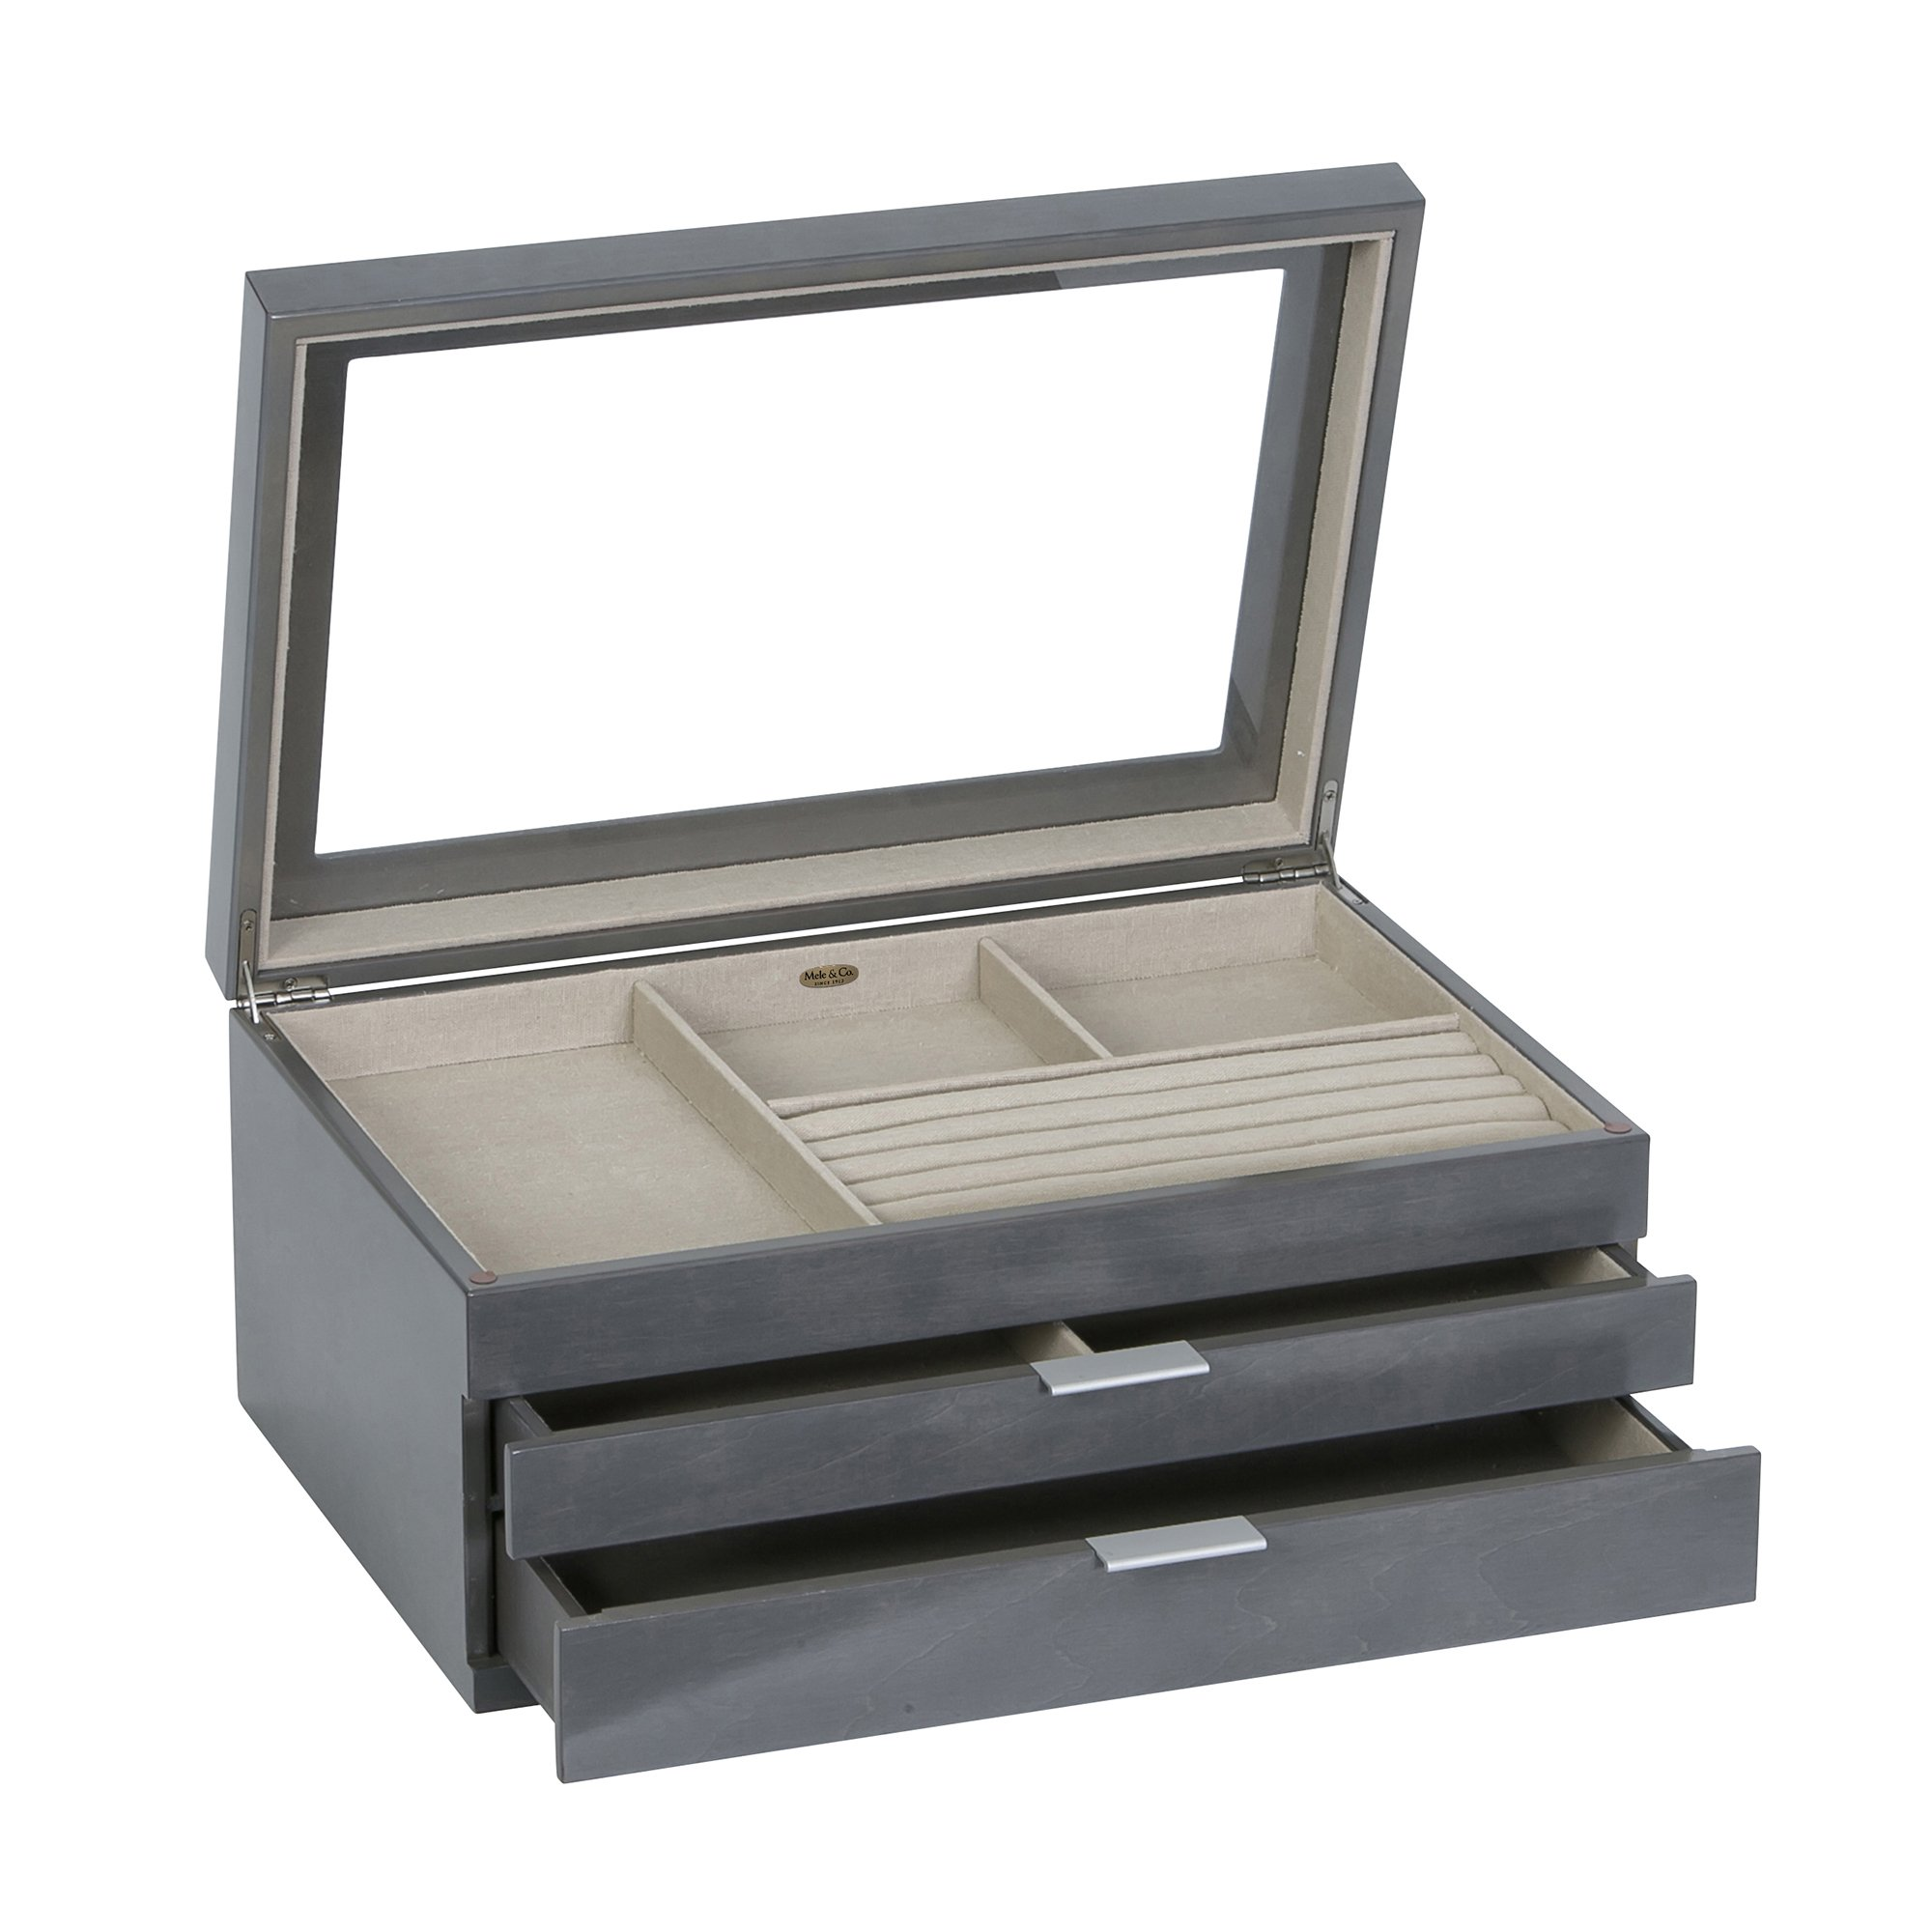 Mele & Co. Misty Glass Top Wooden Jewelry Box (Oceanside Grey Finish) by Mele & Co. (Image #3)